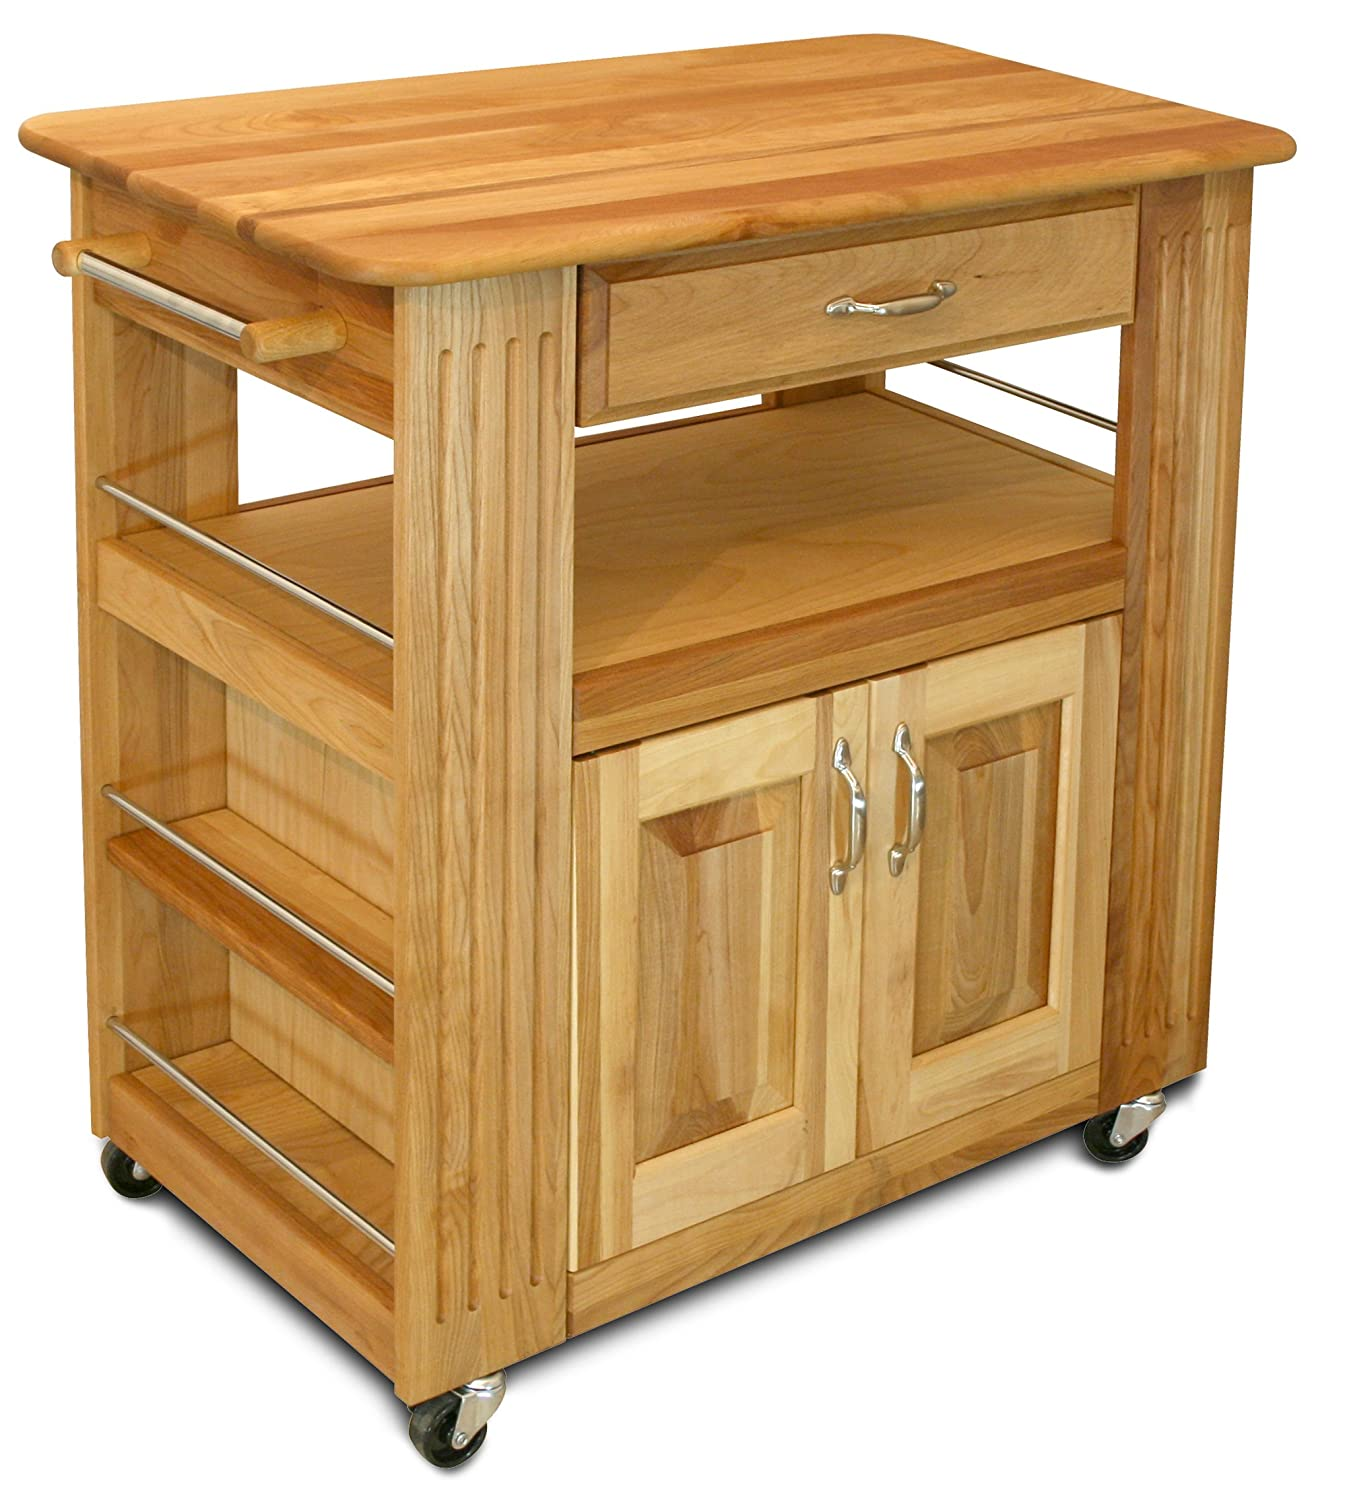 amazon com catskill craftsmen heart of the kitchen island bar rh amazon com 1480 catskill craftsmen kitchen cart catskill craftsmen natural kitchen cart with drop leaf